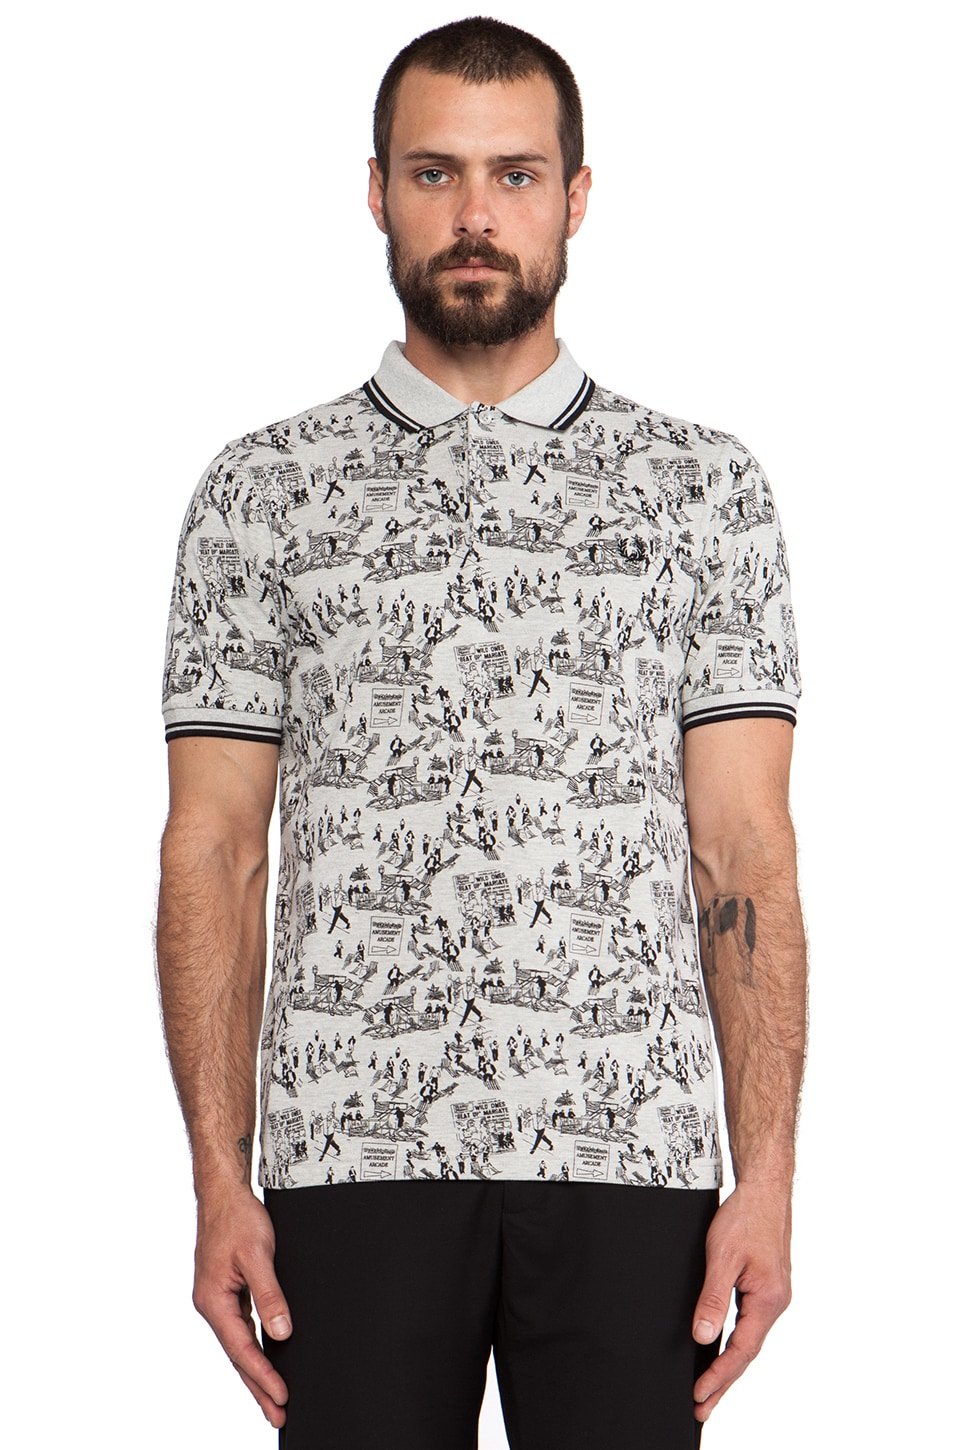 Fred Perry Margate Collection Whitsun Weekend Print Shirt in Marl Grey